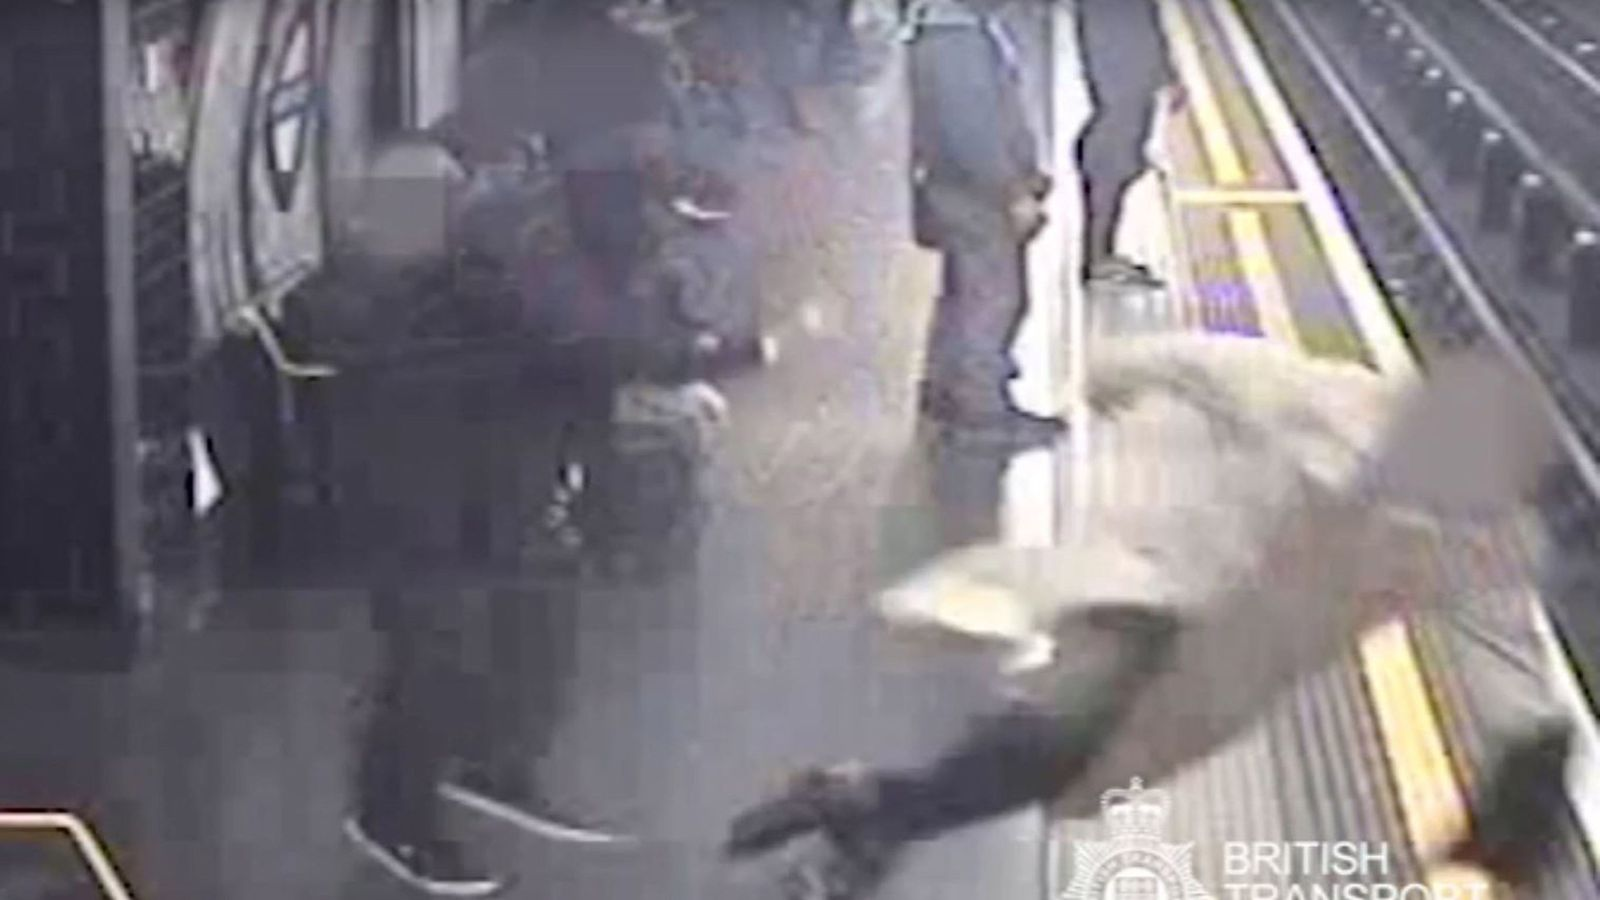 Tube Pusher Guilty Cctv Shows Moment 91-Year-Old Man Sent -7932